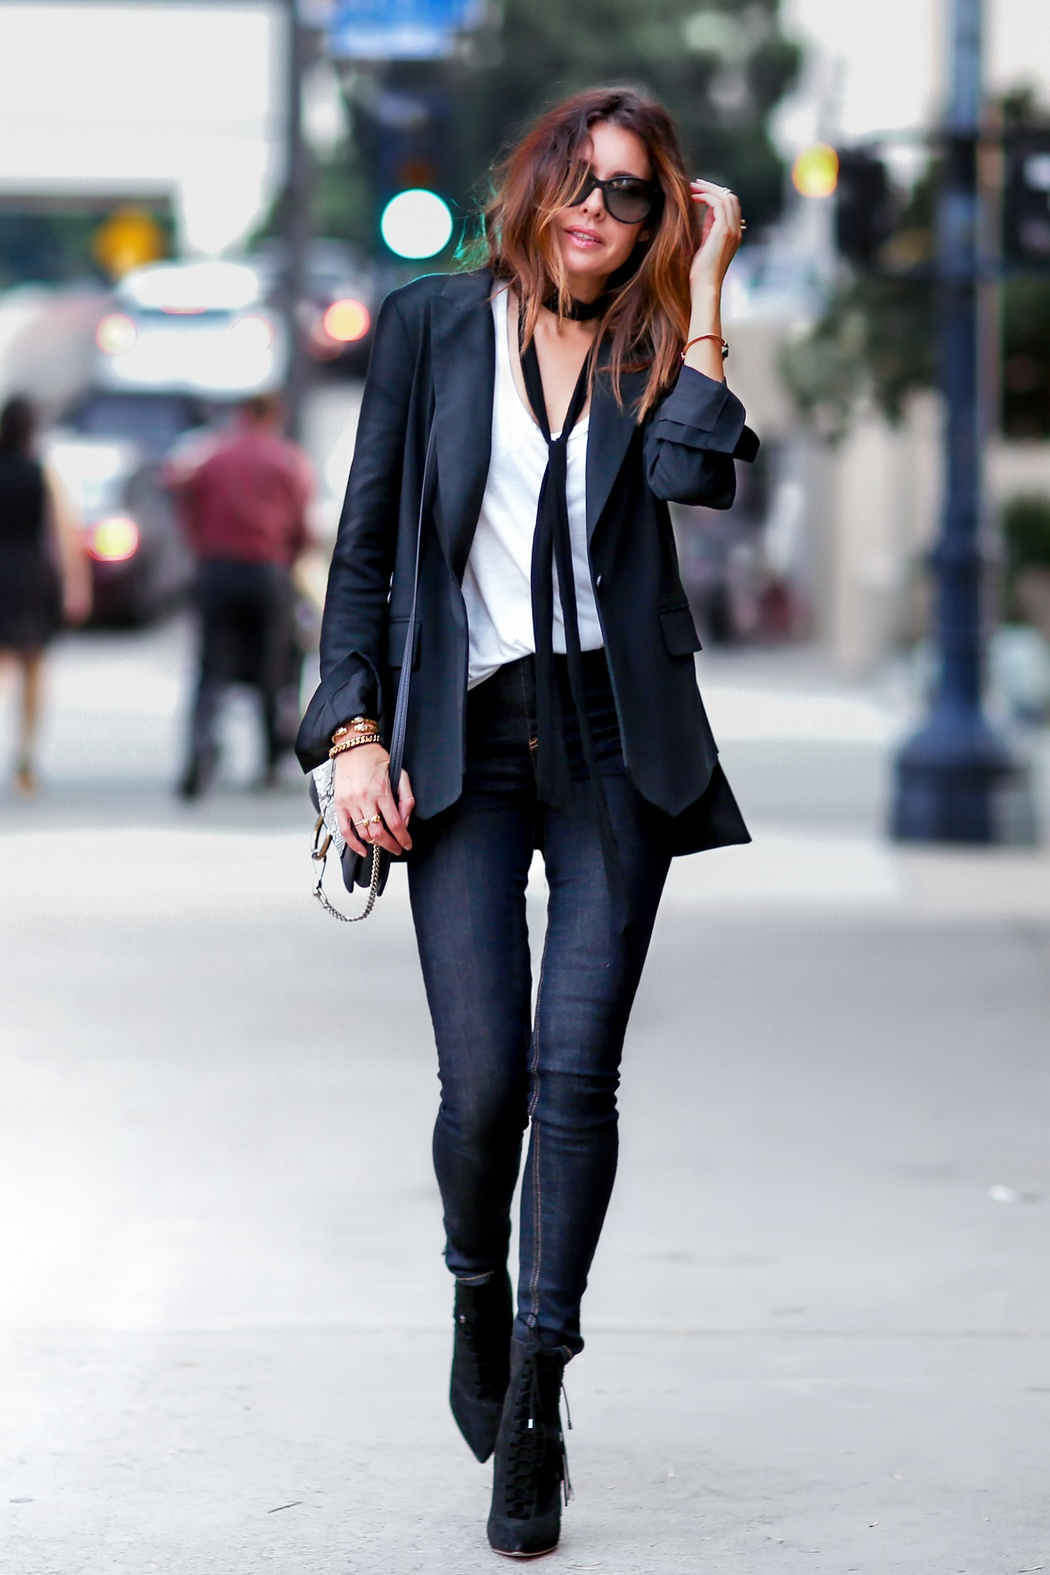 Skinny Scarf Trend Are You Buying Into This Fall Trend ...